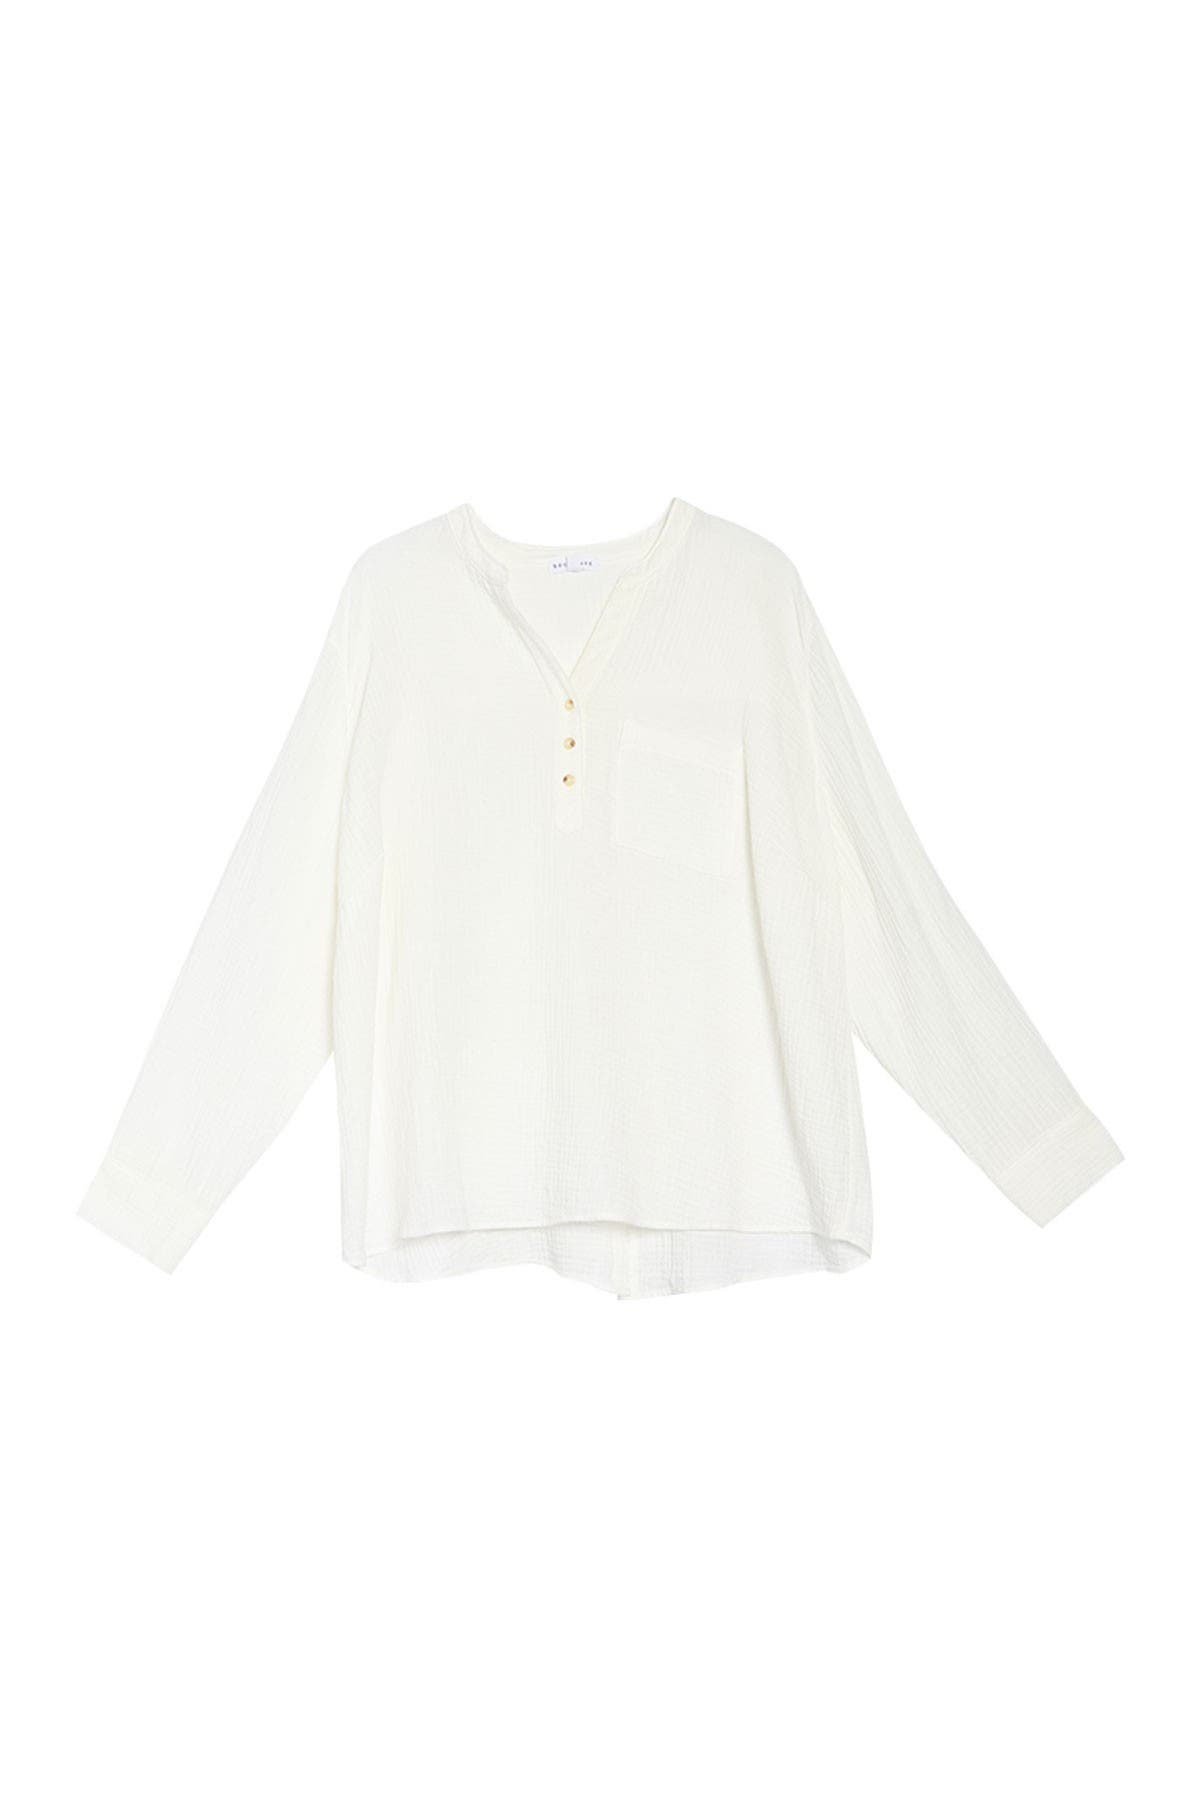 Image of Socialite Split Neck Long Sleeve Top